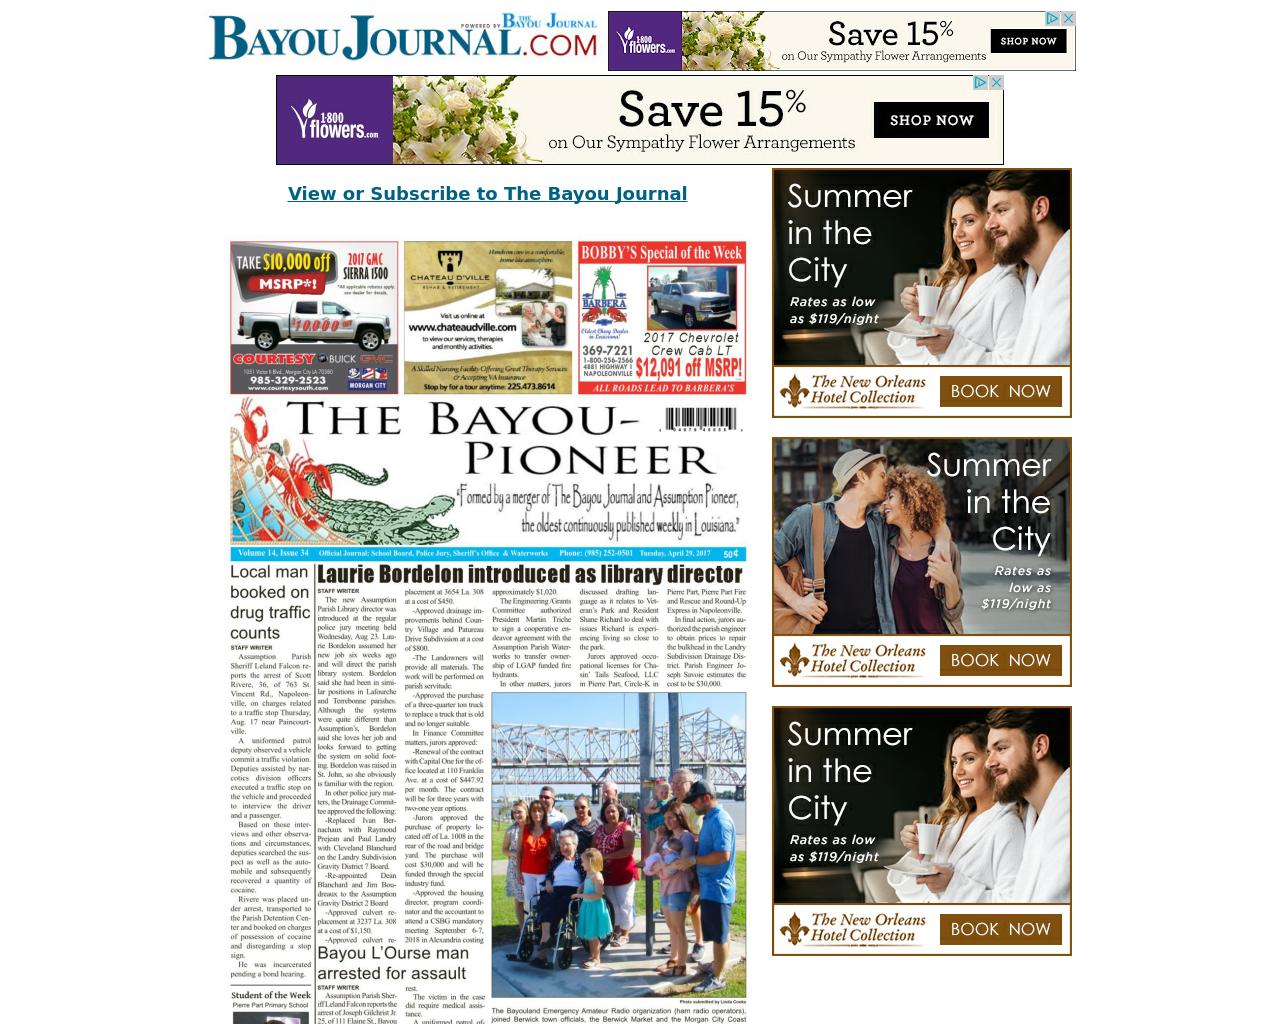 The-Bayou-Journal-Advertising-Reviews-Pricing